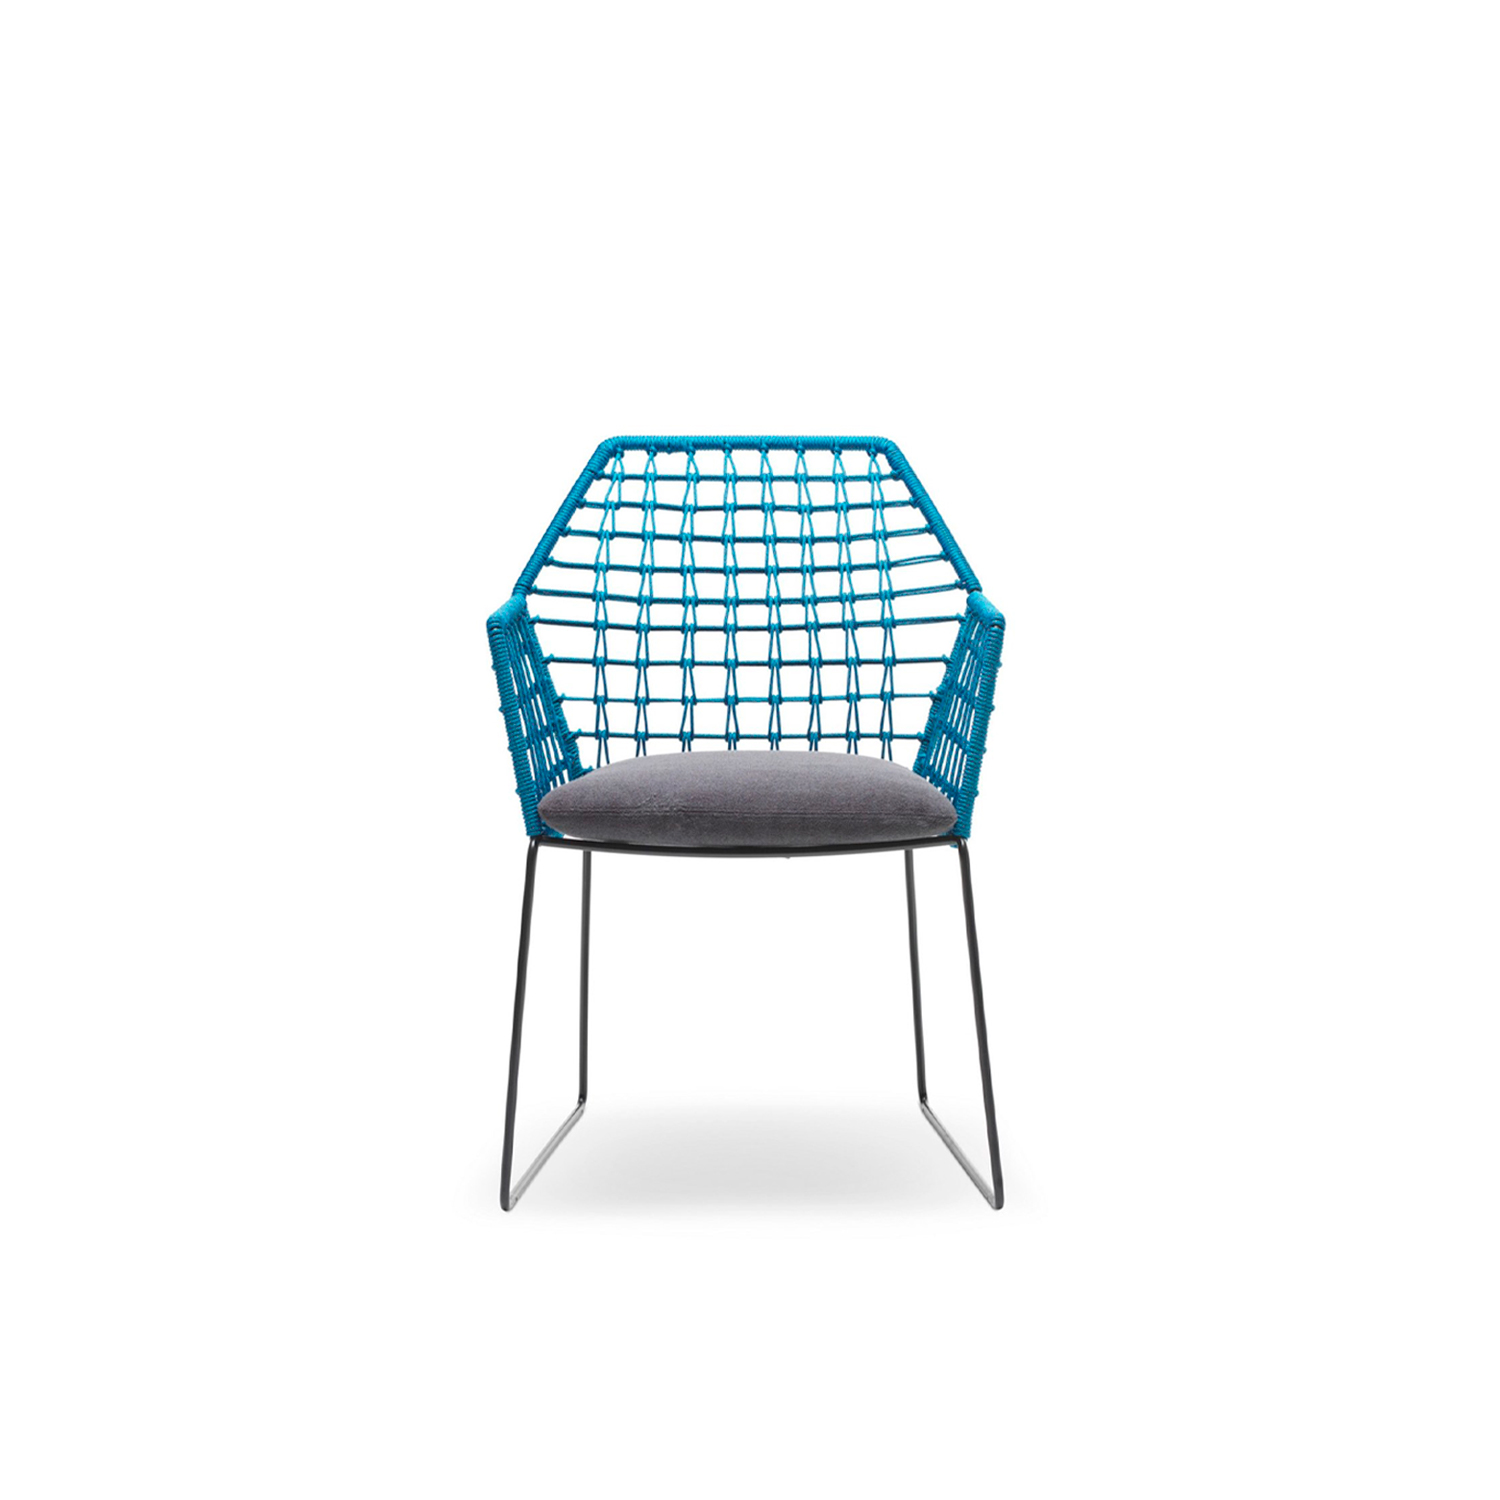 New York Soleil Chair with Armrests - New York Soleil is a garden chair with armrests in removable fabric, part of the homonymous collection.‎